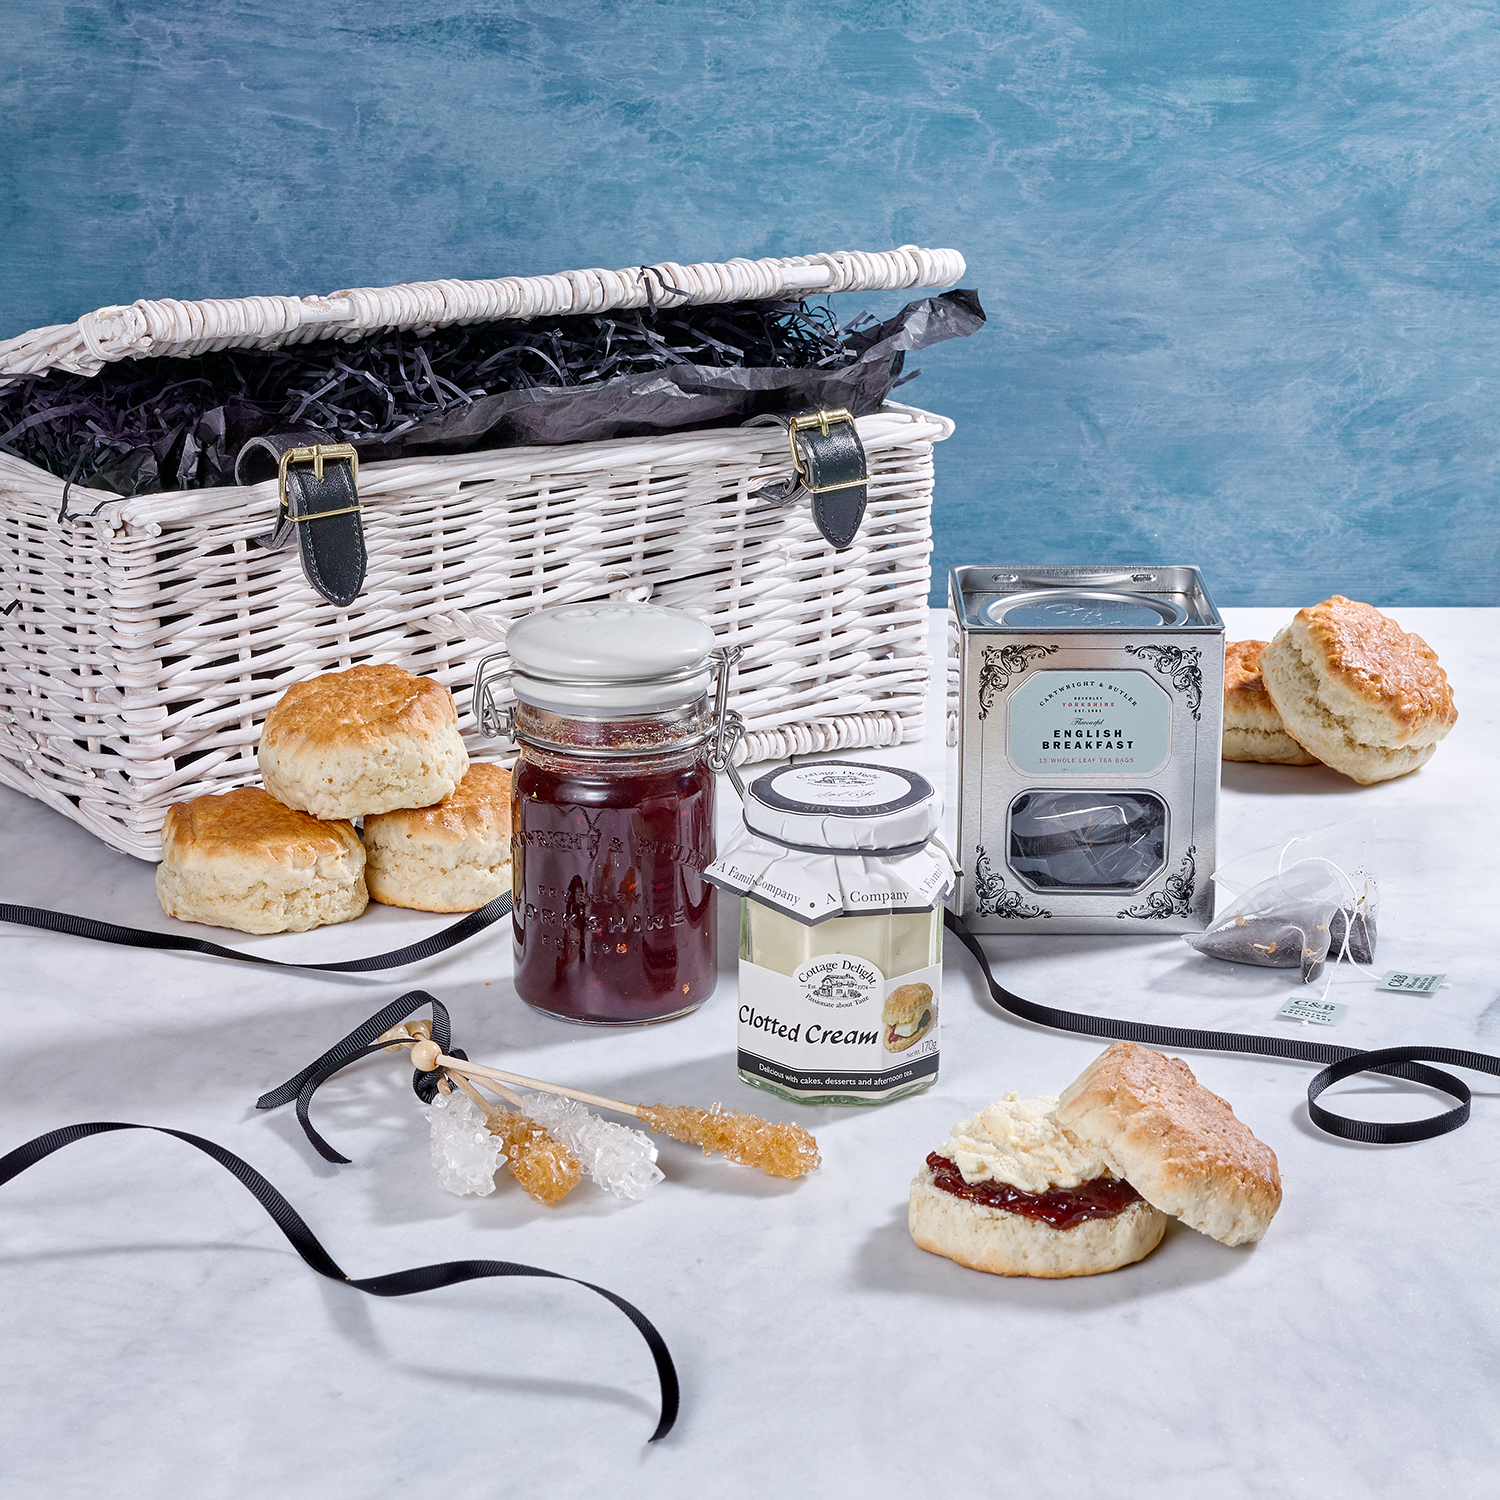 Hamper product photography food and still life photography, jam scones and cream shot in london by Howlett photography